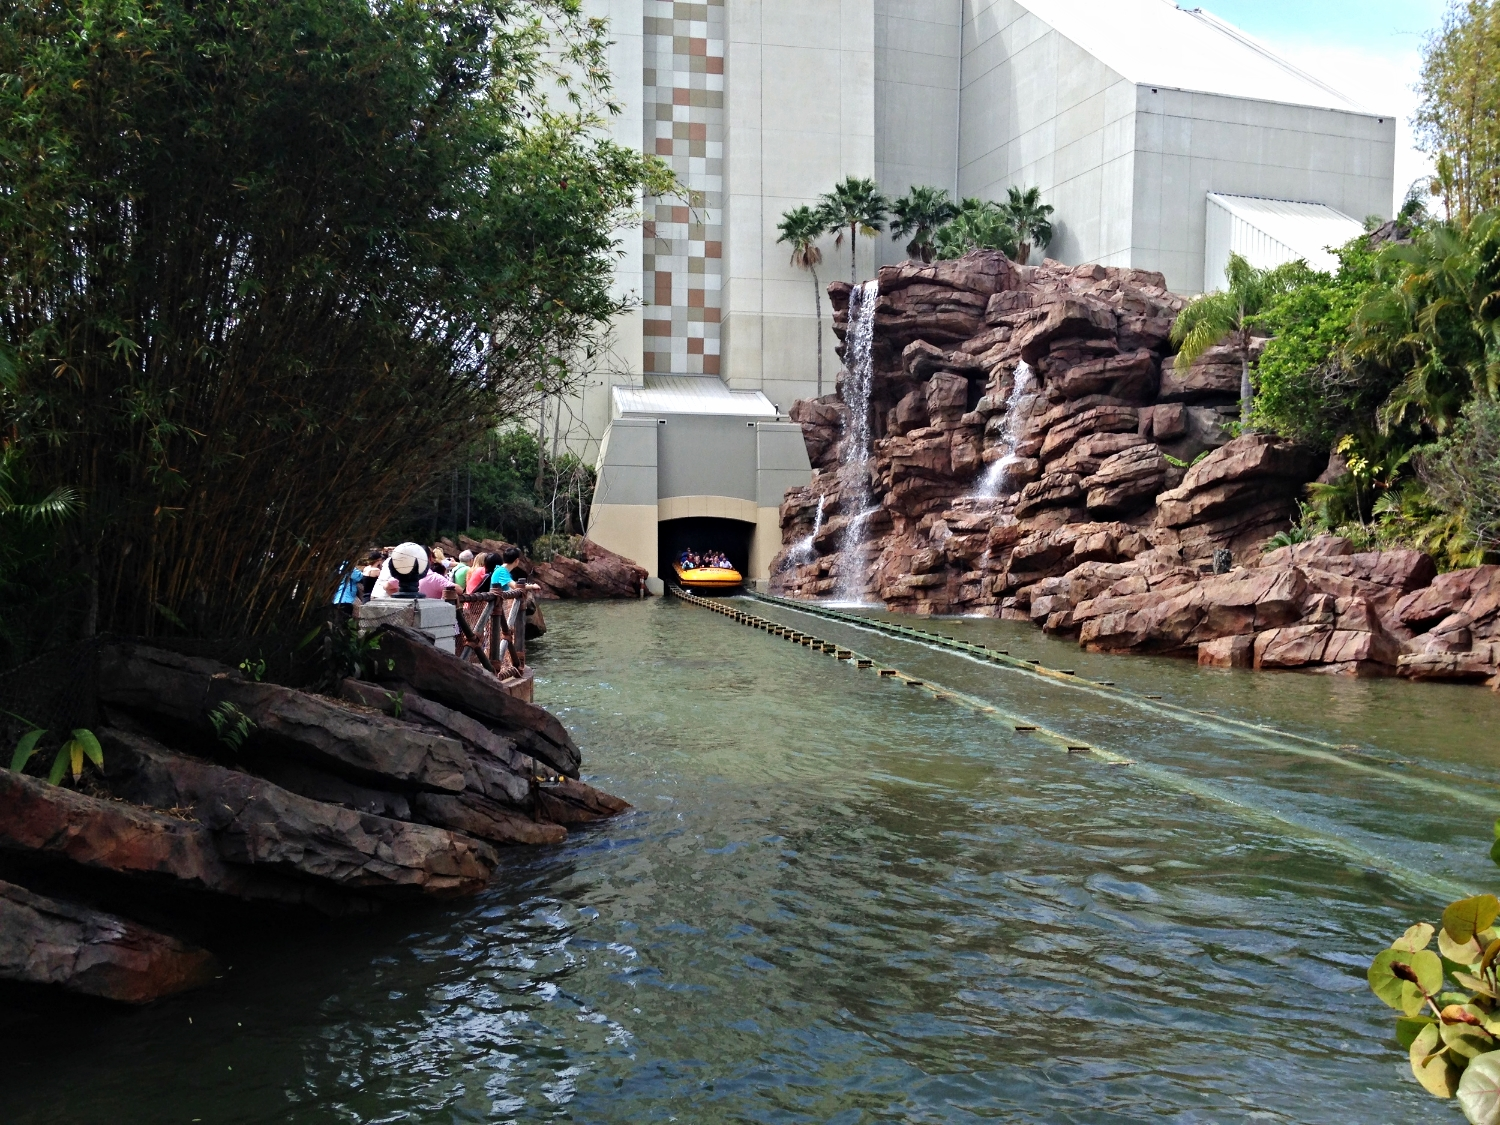 Jurassic Park River Adventure Ride Vehicle Before it Hits the Water